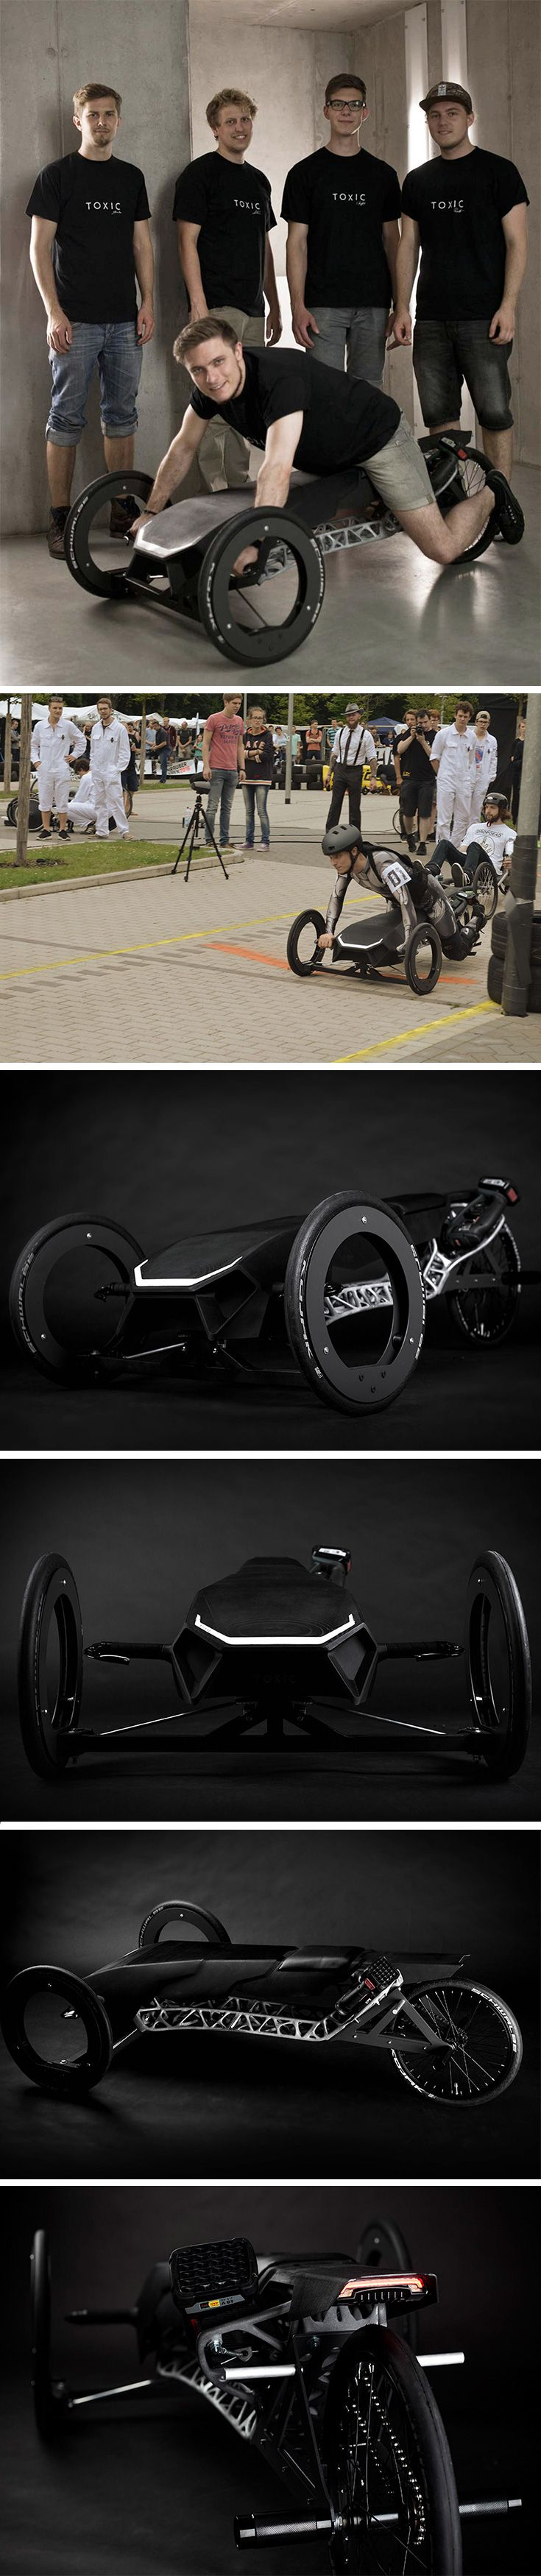 """The goal behind the TOXIC racer was to create an almost entirely 3D printed vehicle powered only by a cordless electric drill. Designed for the for the annual """"Akkuschrauberrennen"""" drill race in Germany, the team name """"TOXIC"""" refers to a stinging scorpion which the form of the vehicle mimics. As for steering, its been developed to be easily controlled by shifting the drivers weight to one side or the other."""